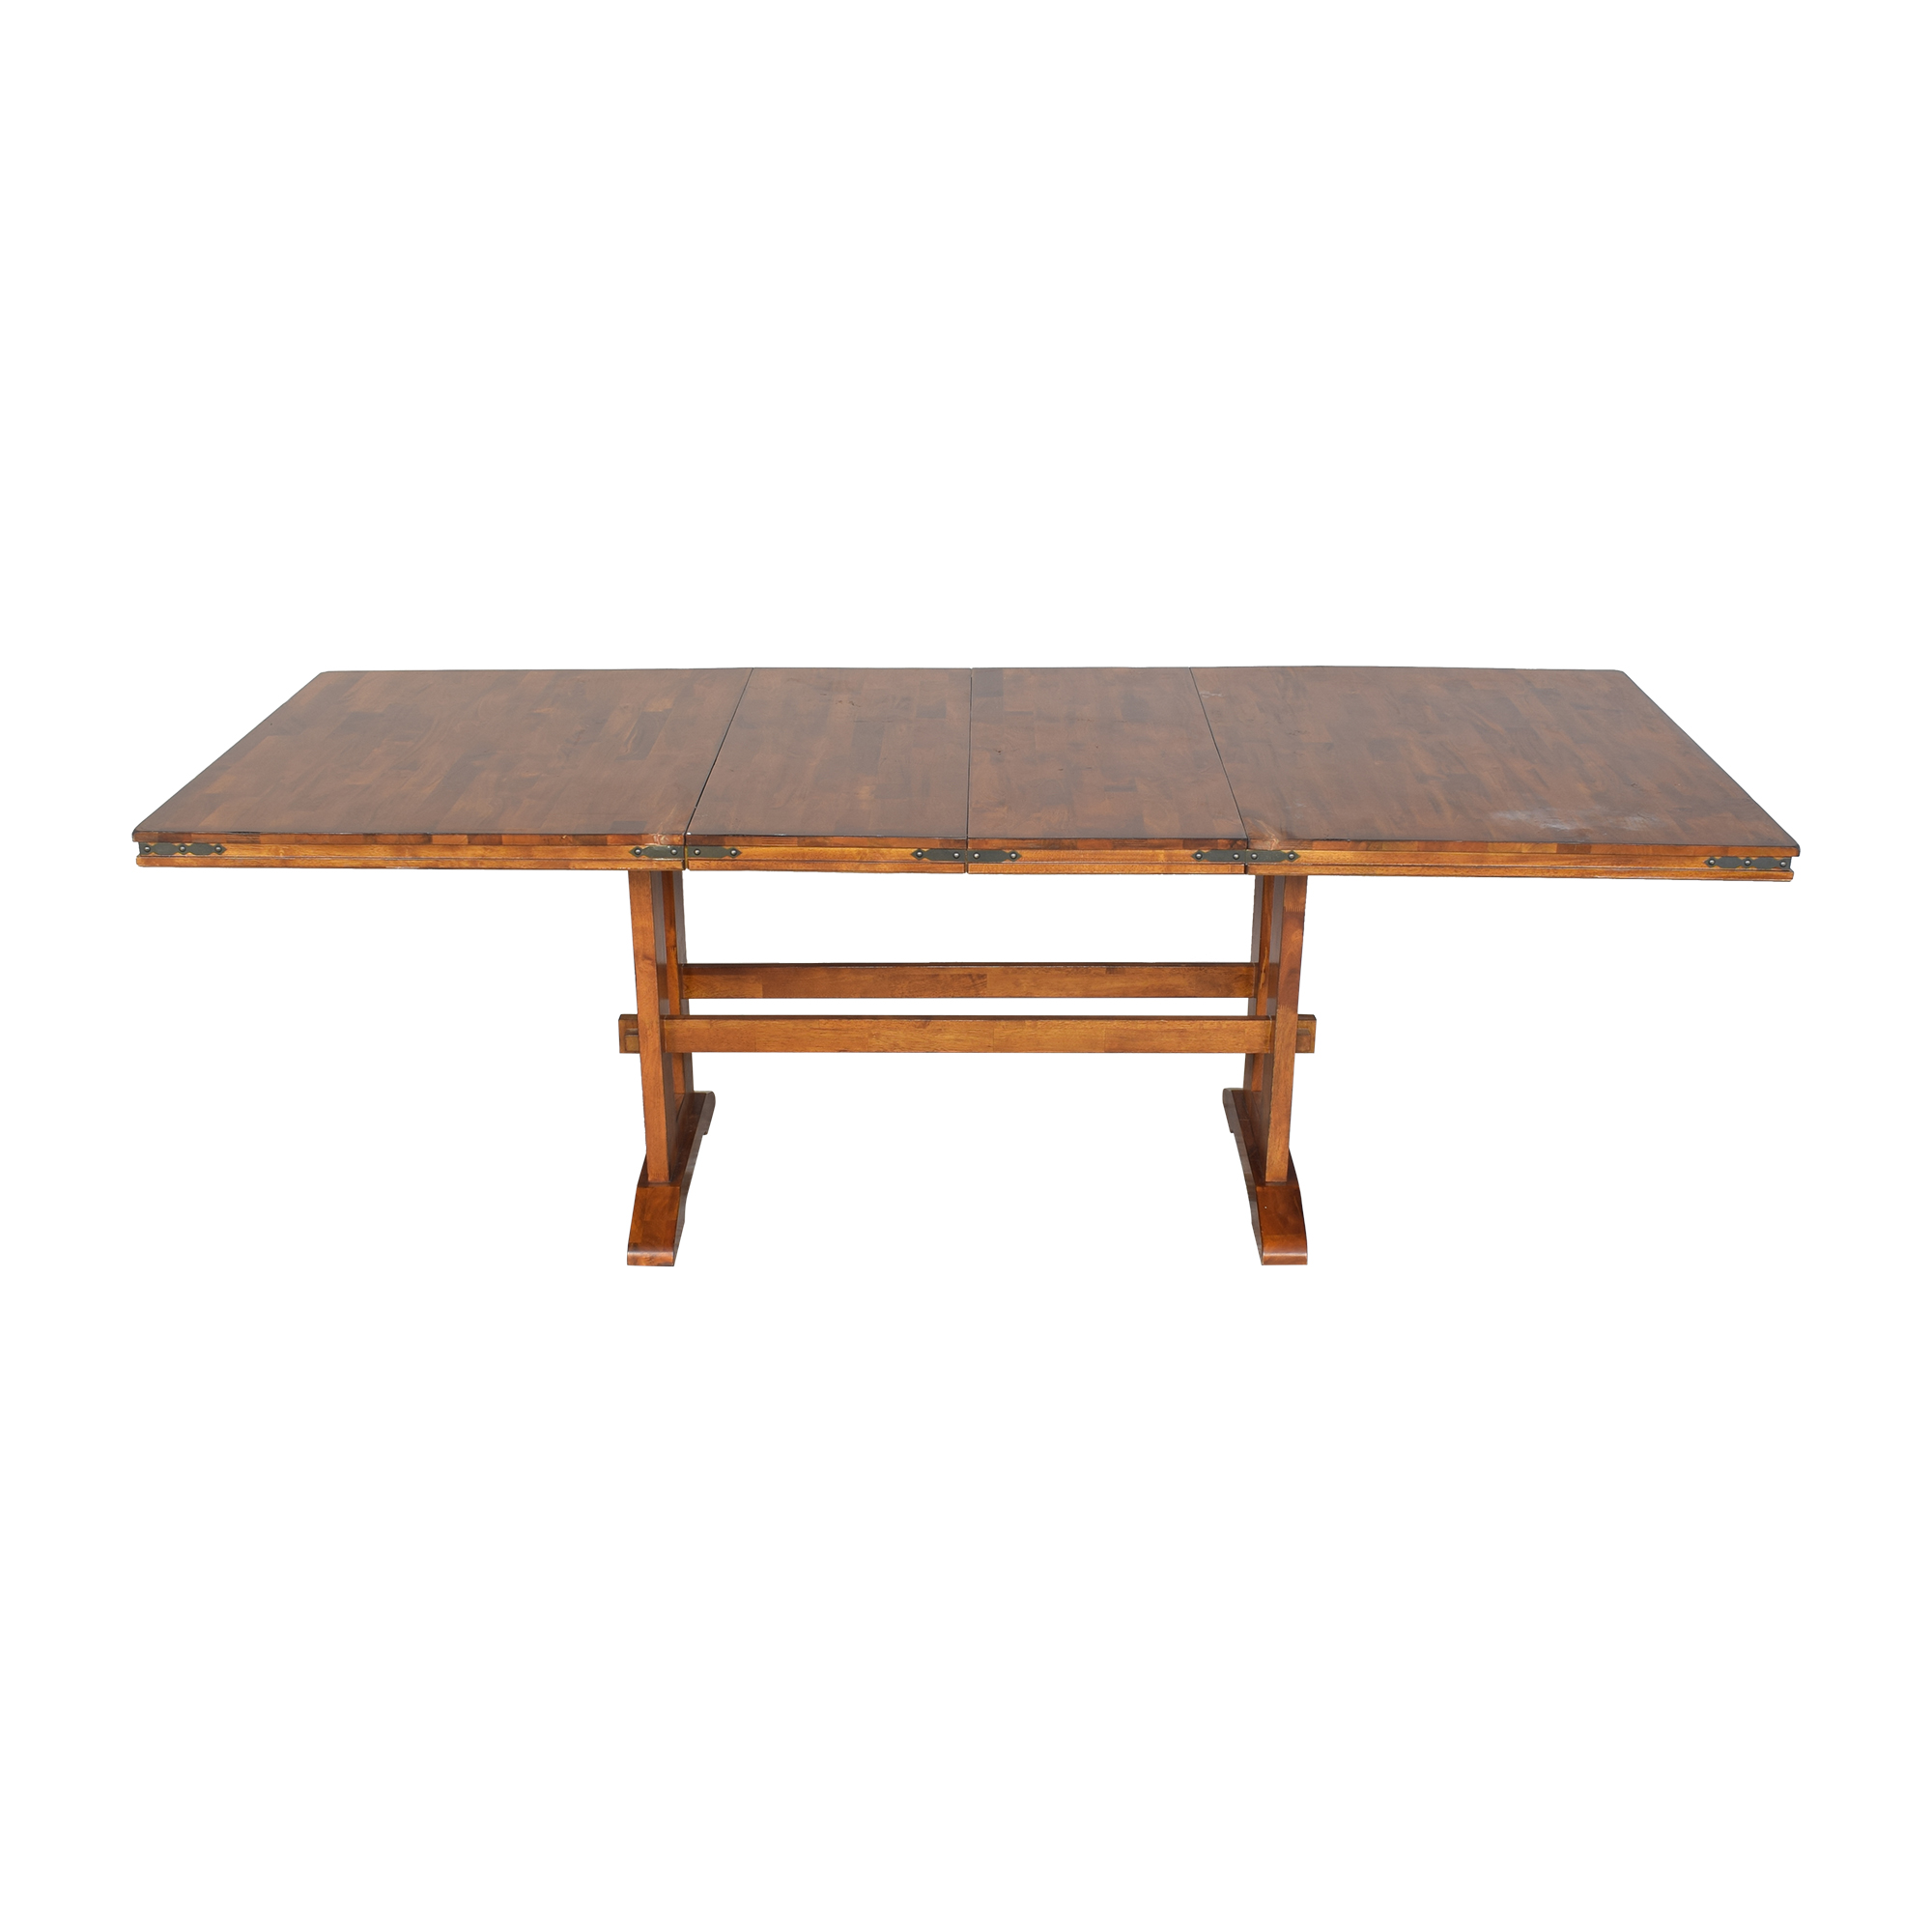 Lenox Lenox Extendable Dining Table coupon